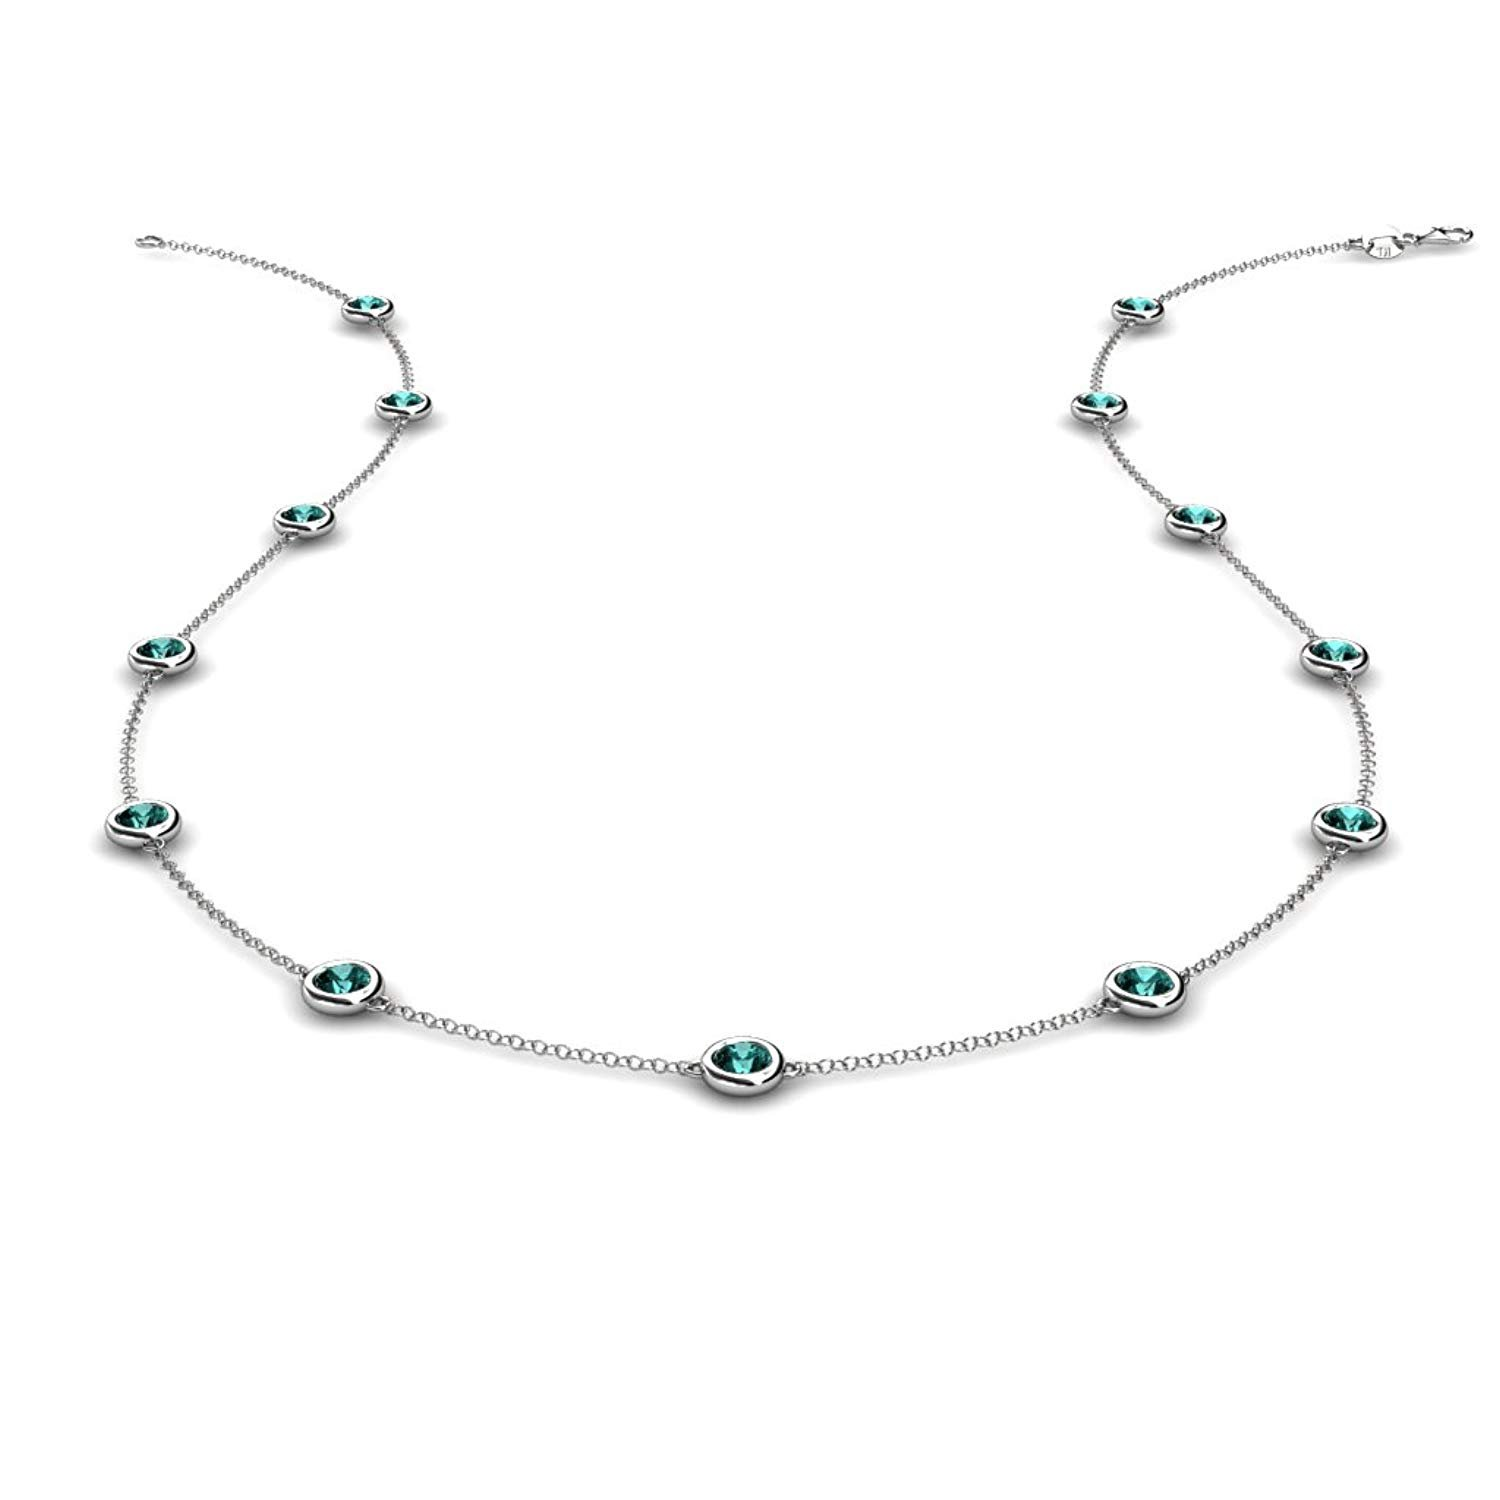 13 Station Blue Diamond on the Cable Necklace 1.30 Carat tw in 14K White Gold.18 Inches in Length by TriJewels